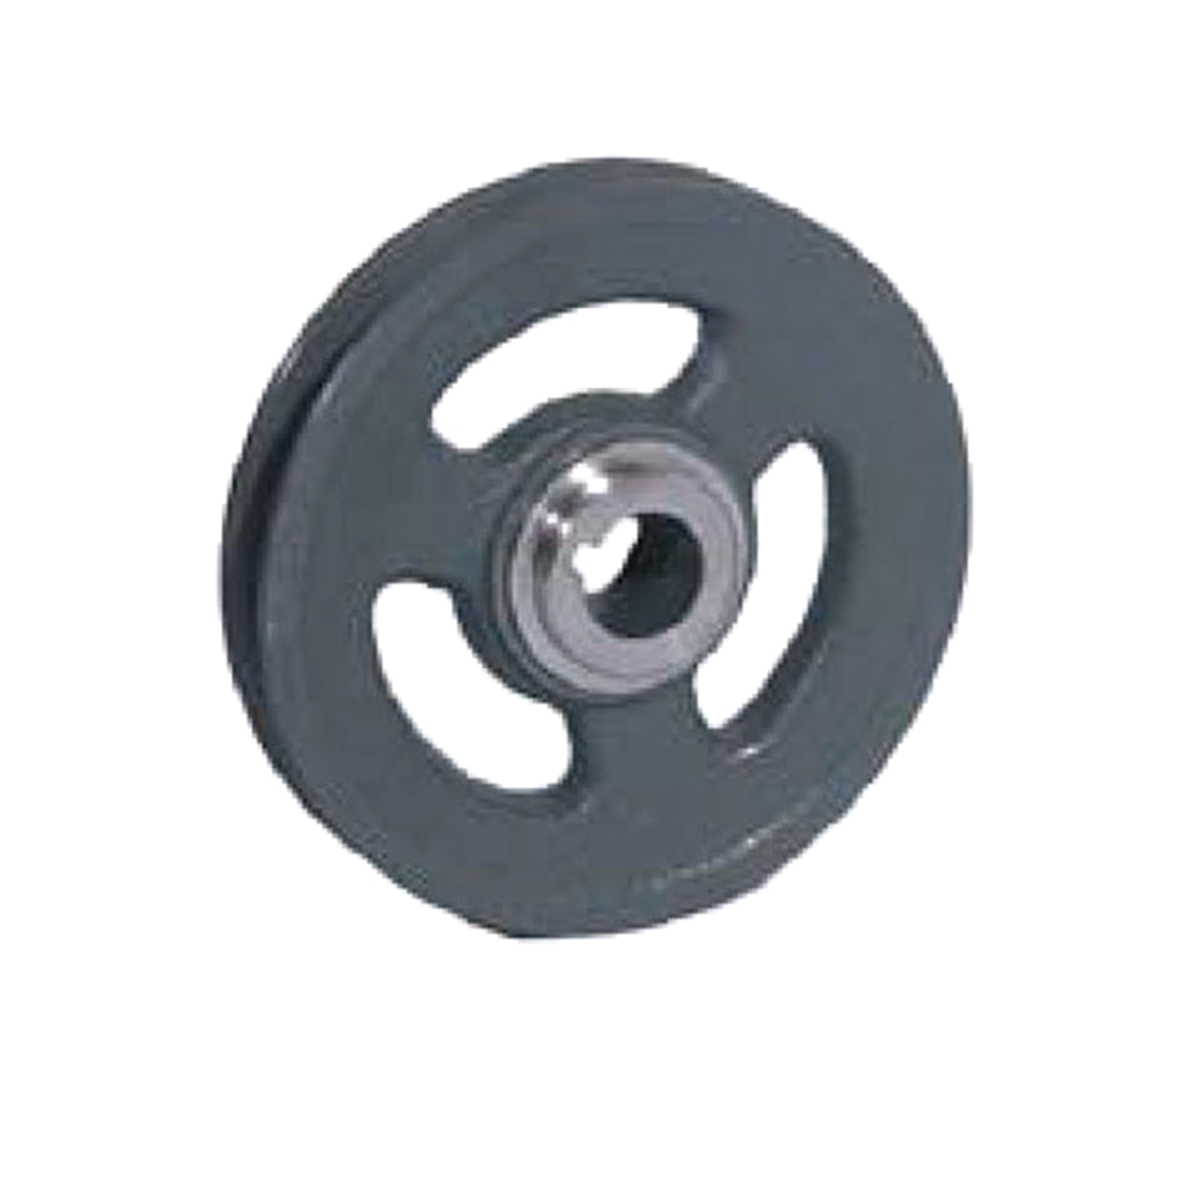 68222TB Dixie Chopper Pulley Twin Drv 1